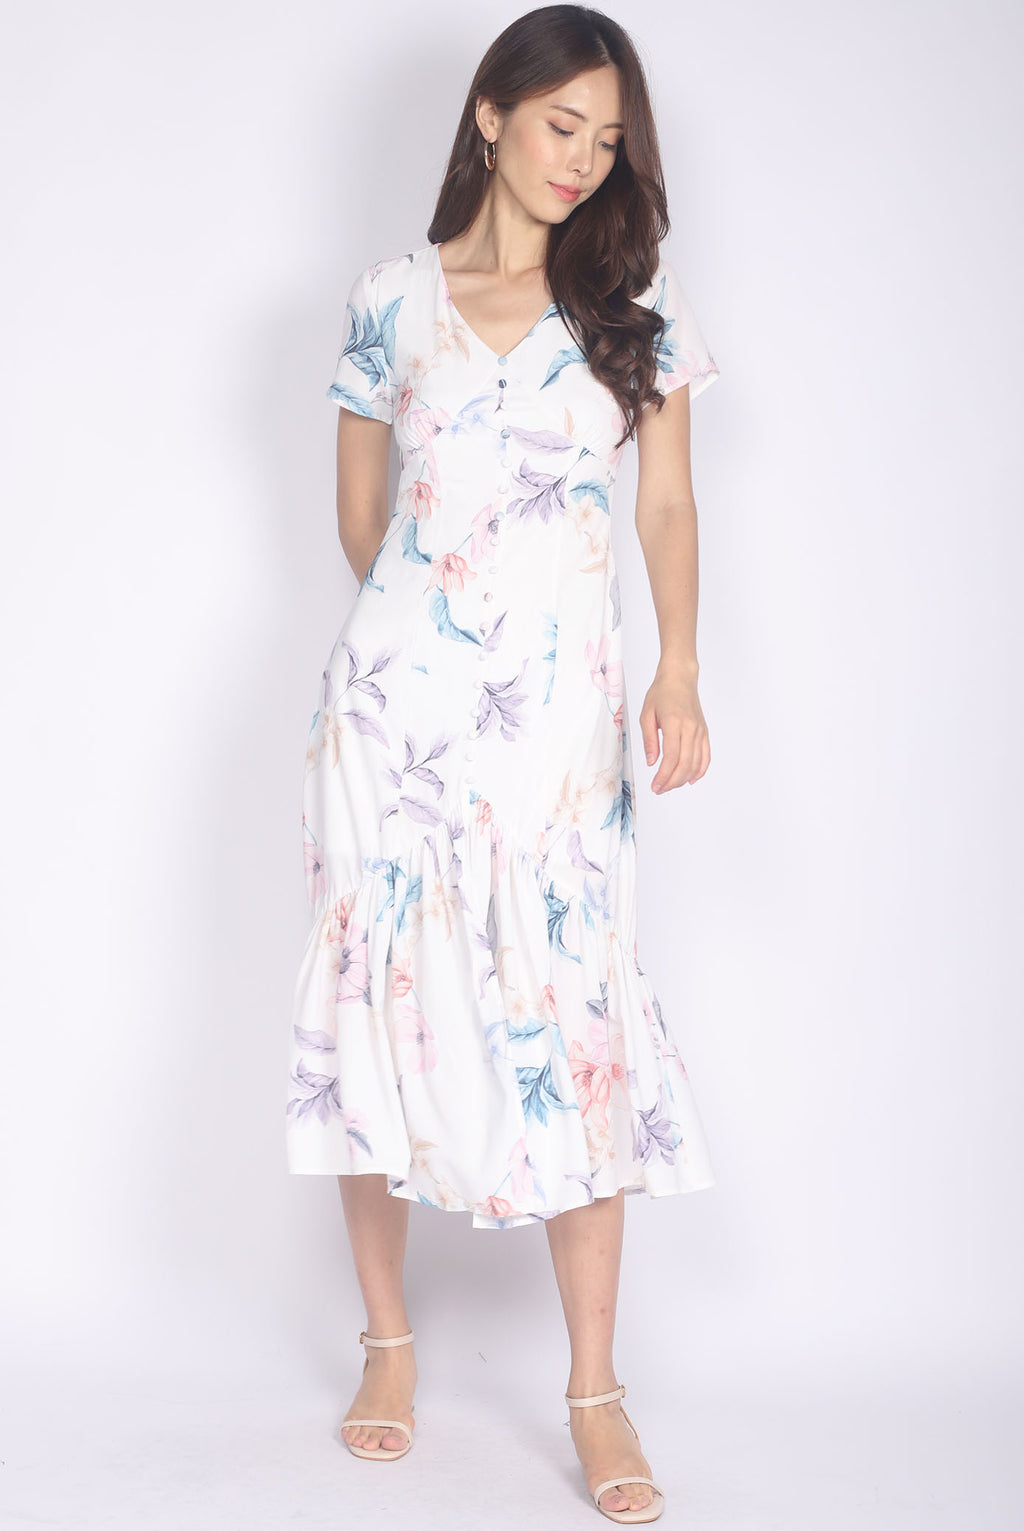 Tenaya Buttons Slit Mermaid Maxi Dress In White Floral